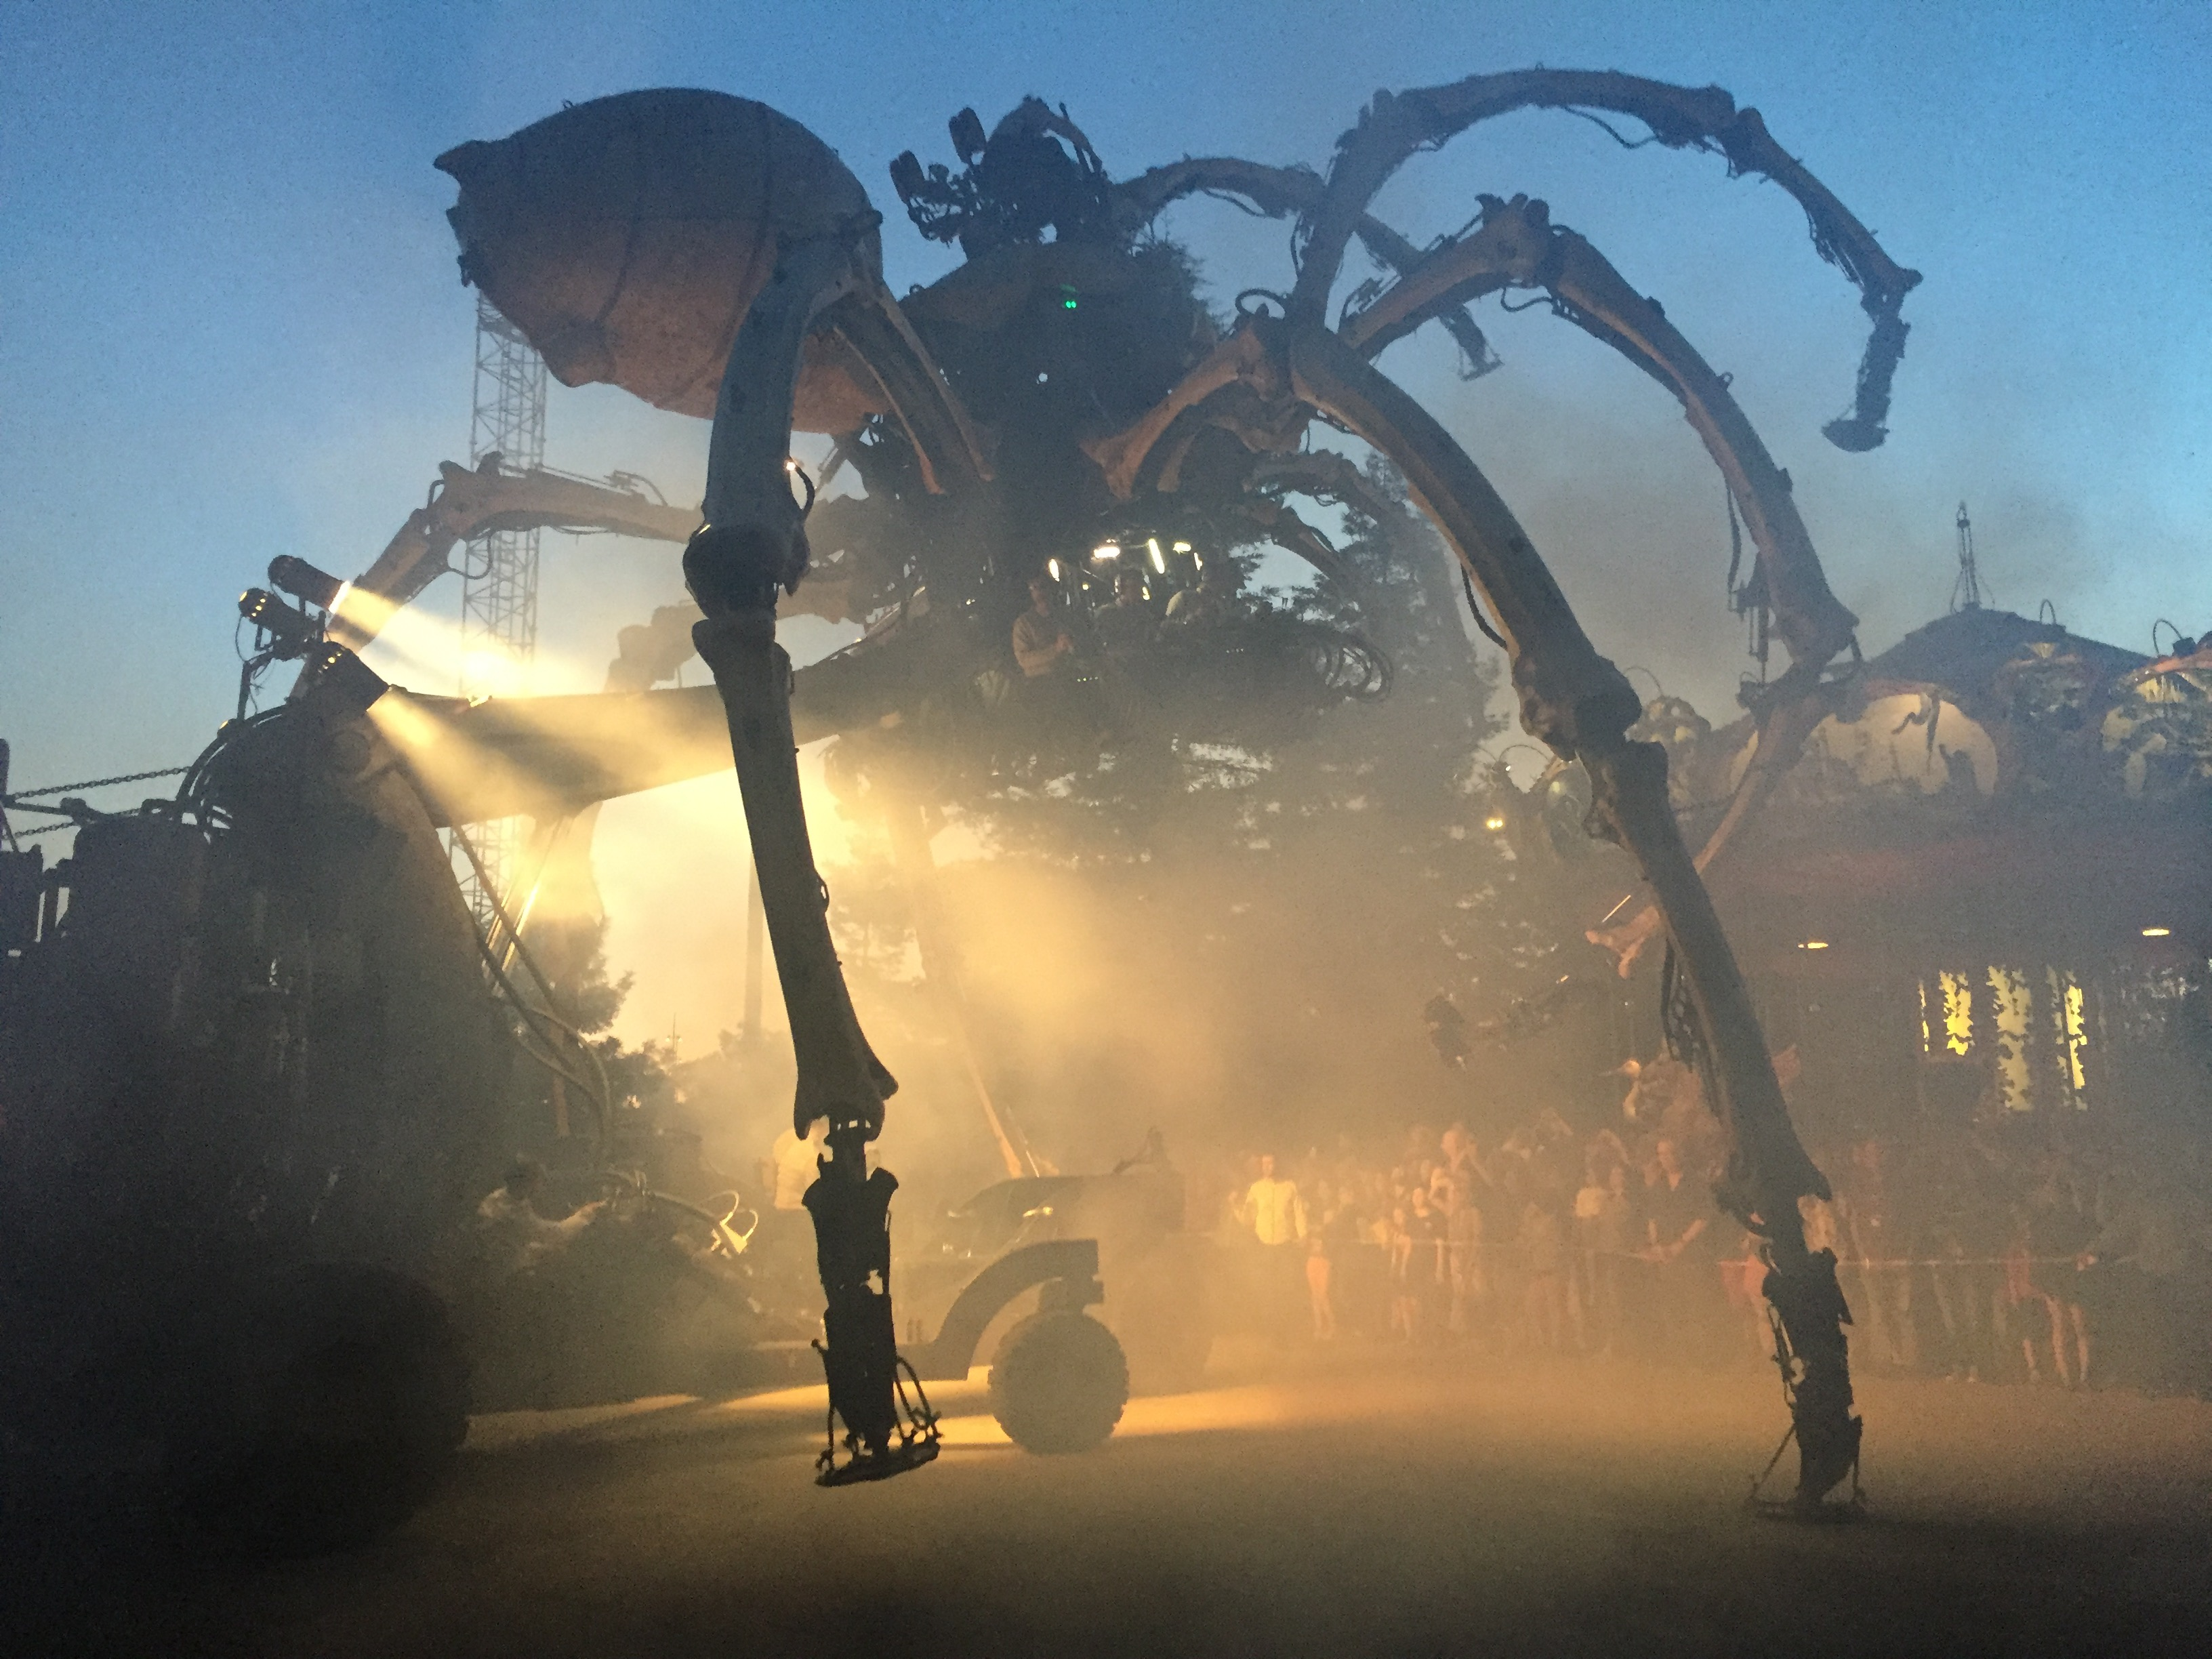 The Giant Spider Awakes in Nantes